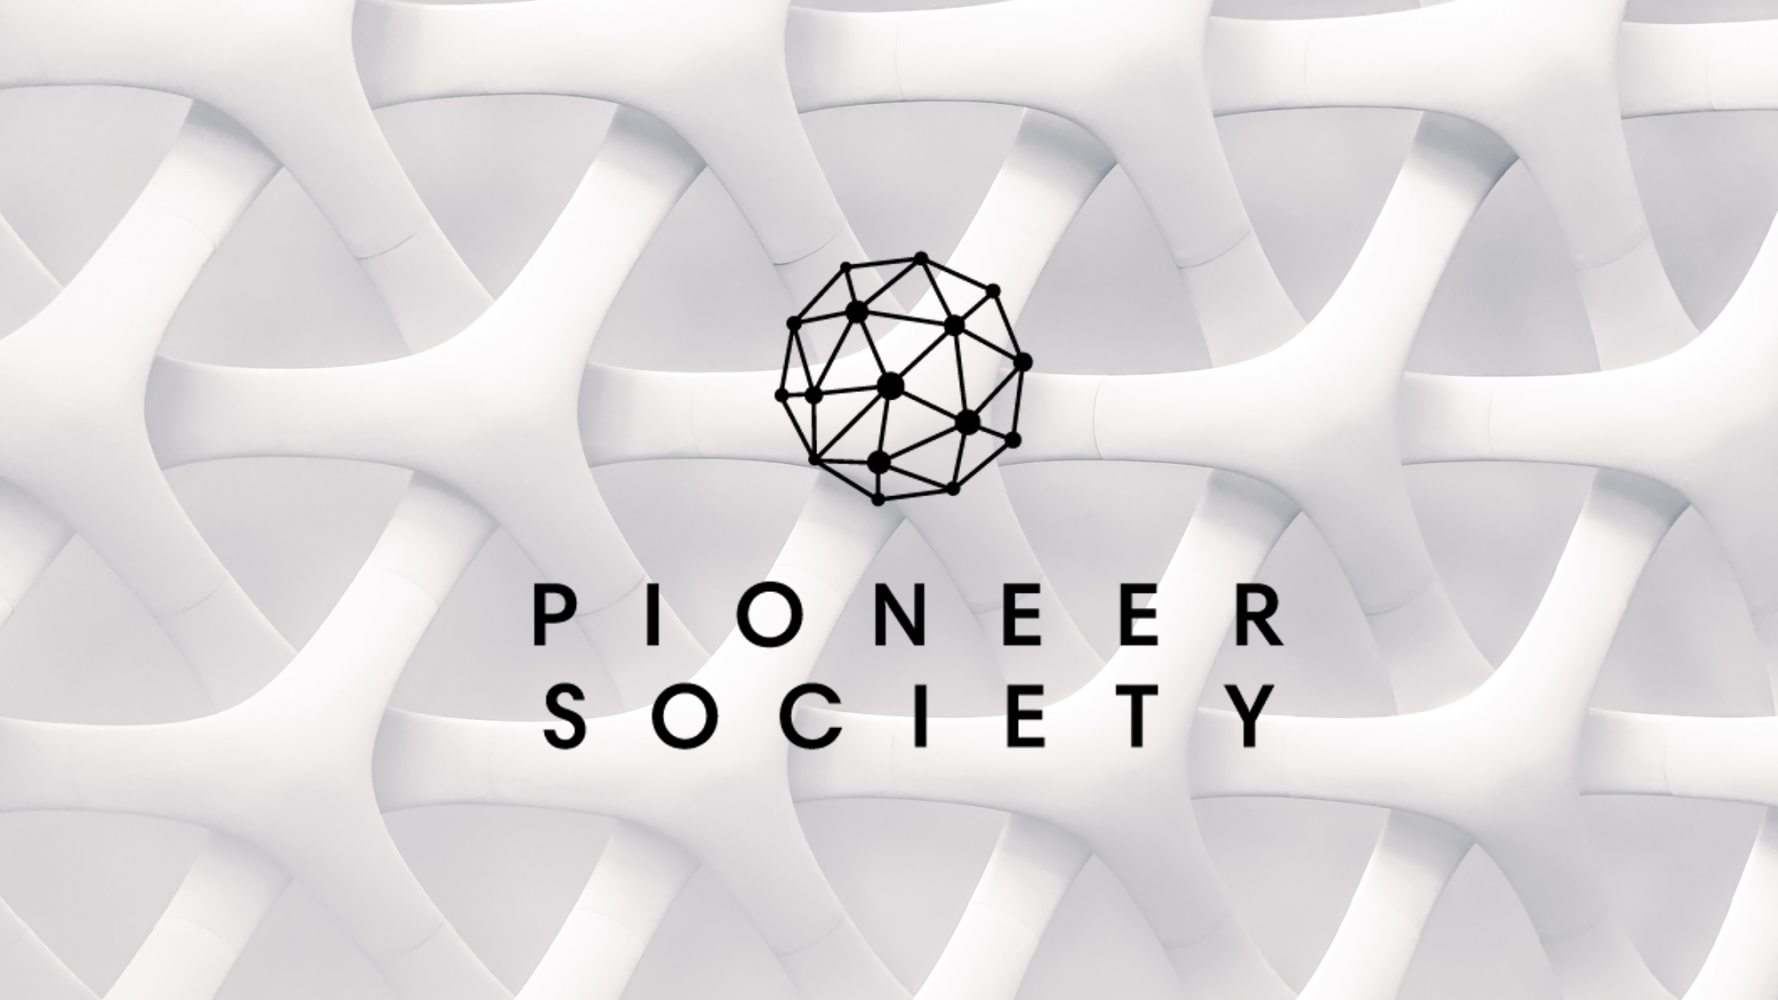 Introducing Pioneer Society